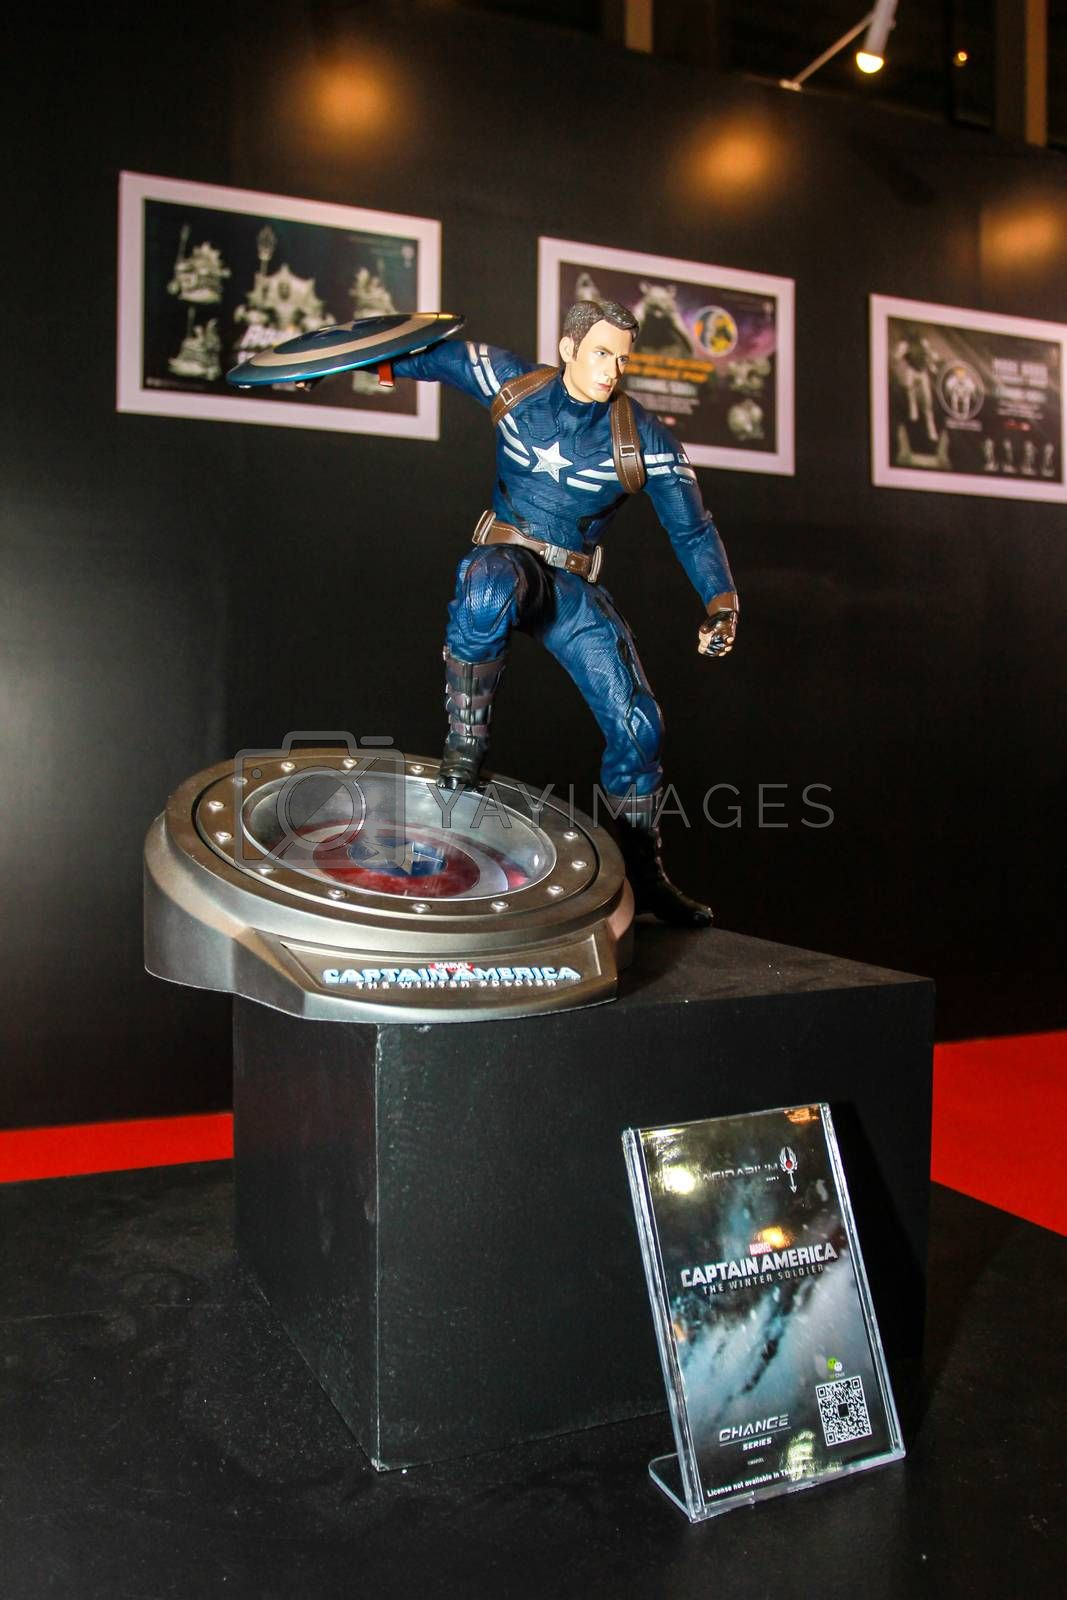 Royalty free image of A model of the character Captain America from the movies and com by redthirteen